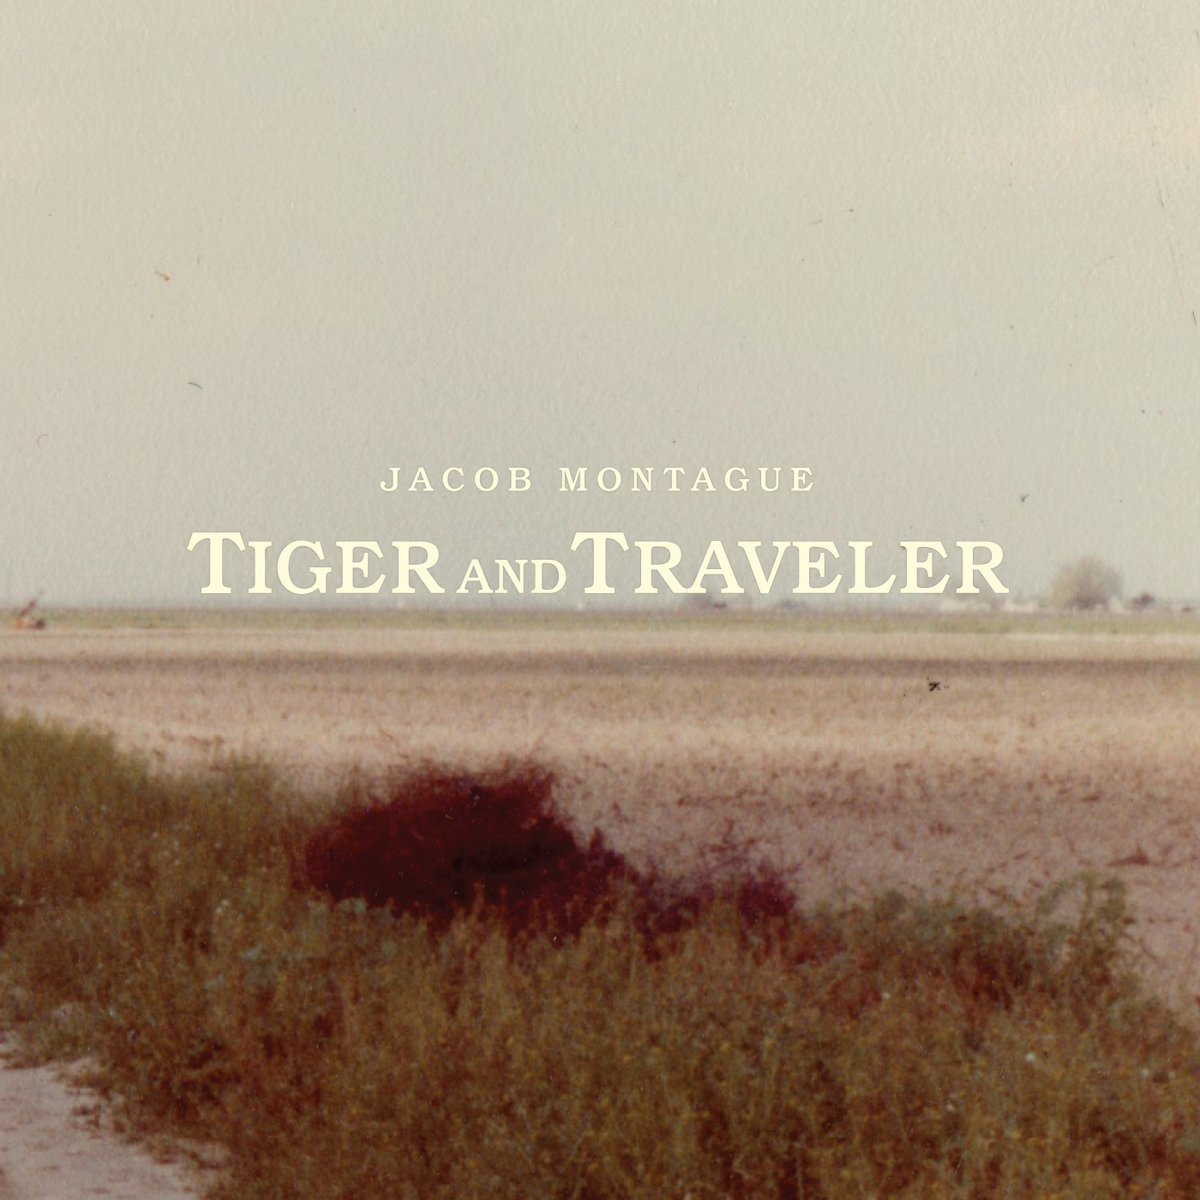 tiger and traveler jacob montague